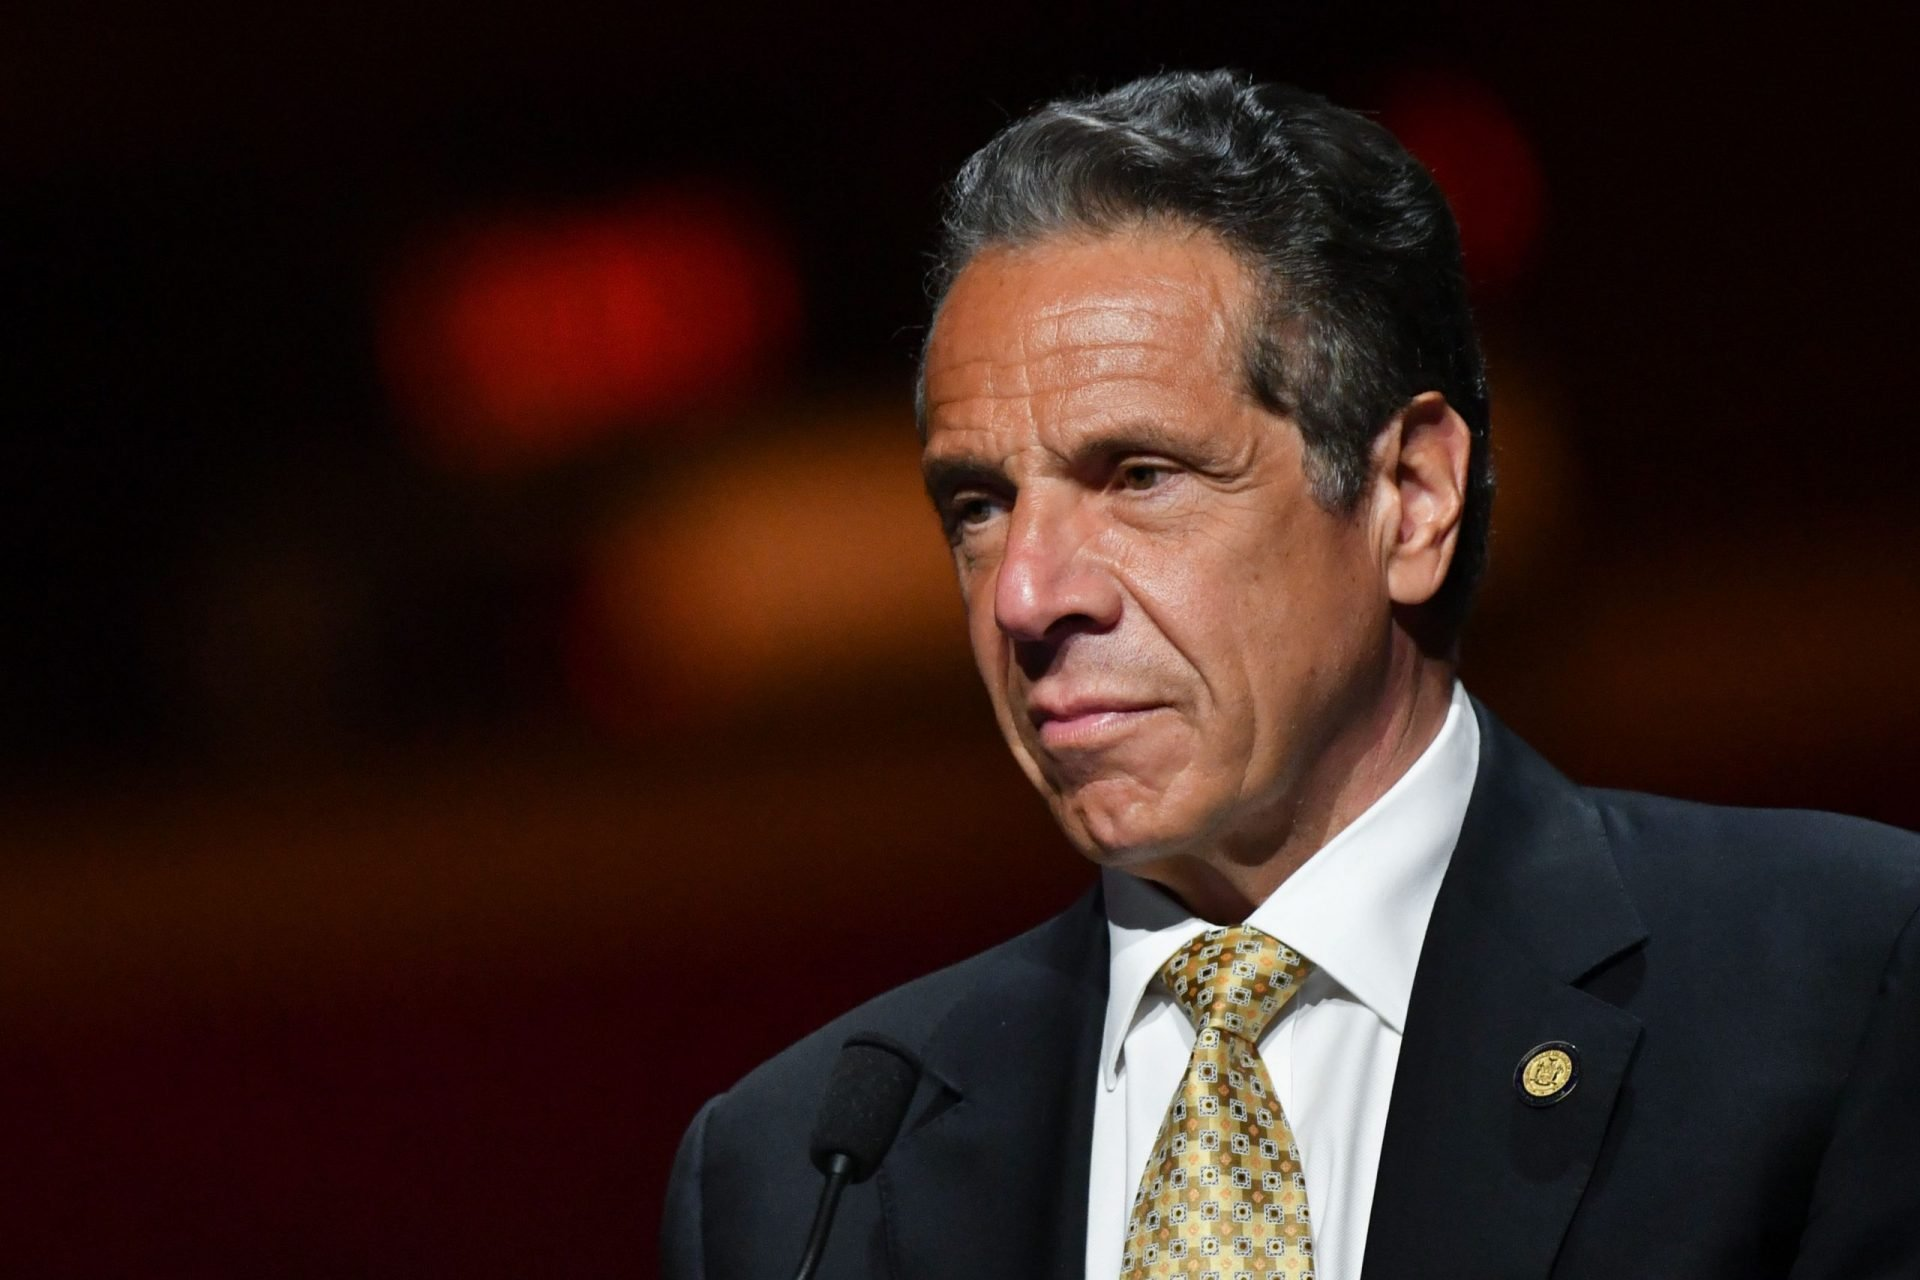 A Look at Andrew Cuomo's Net Worth as He Files for Retirement